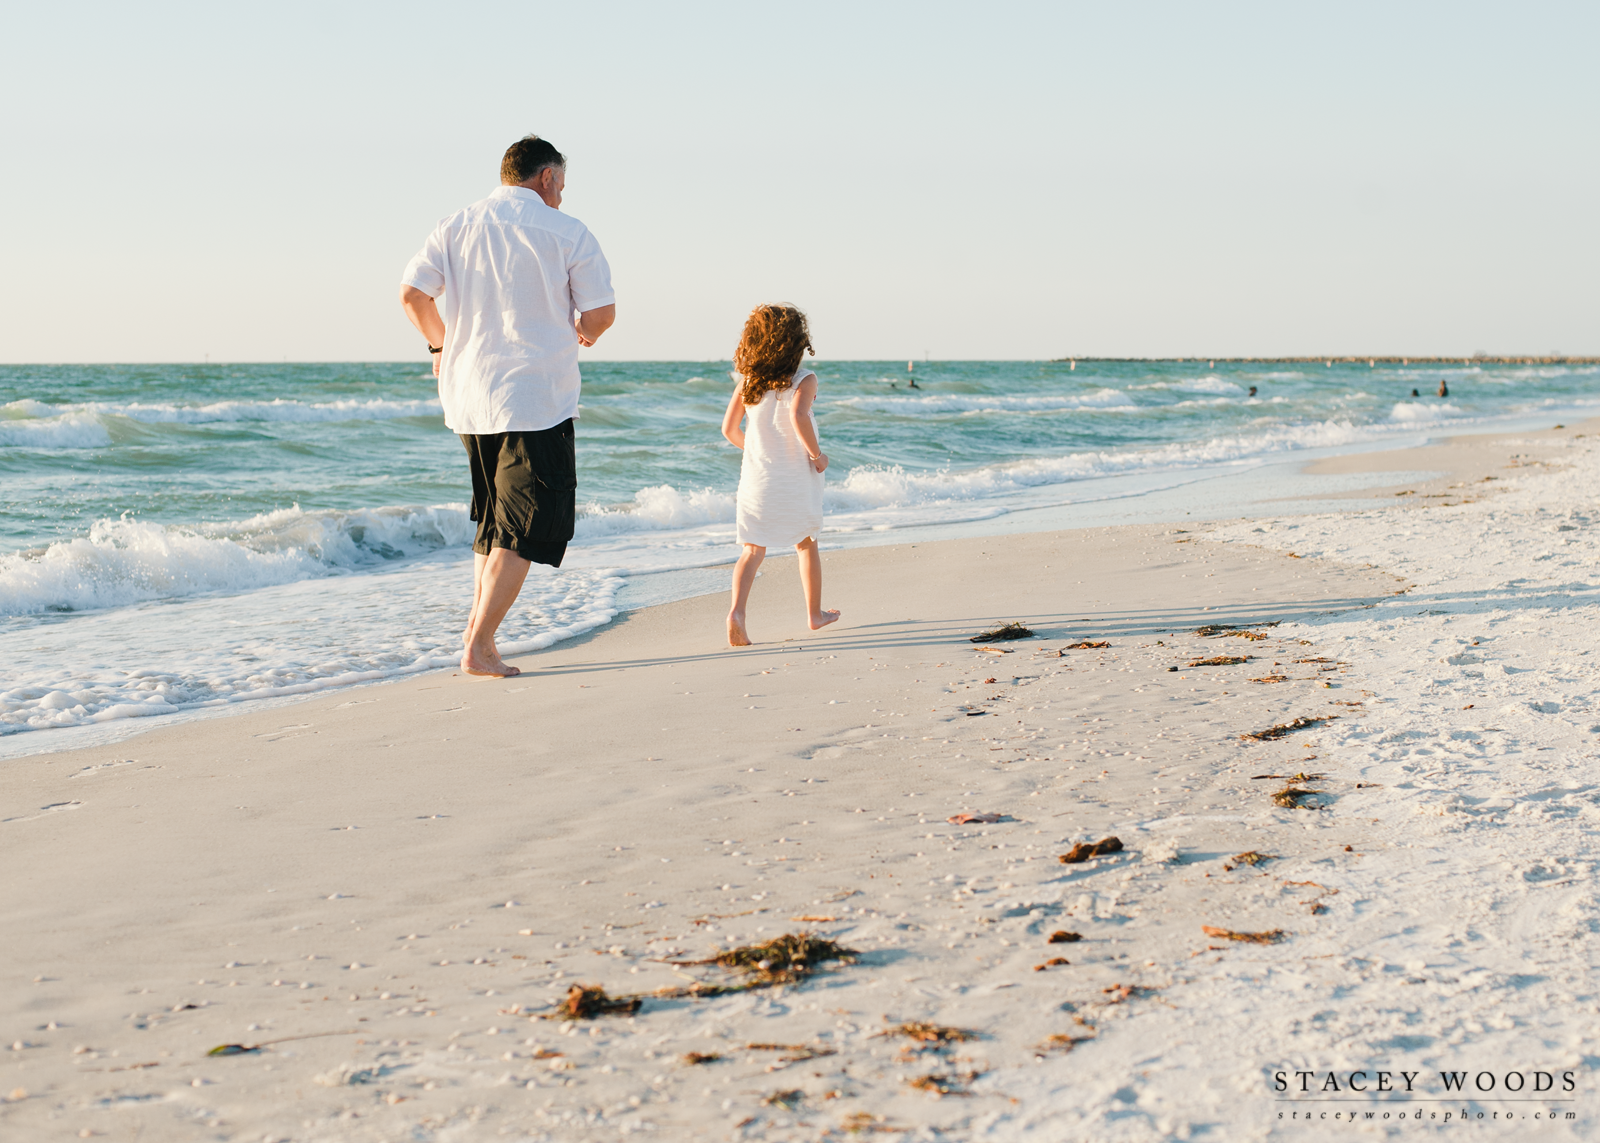 Florida Beach Photographer Stacey Woods